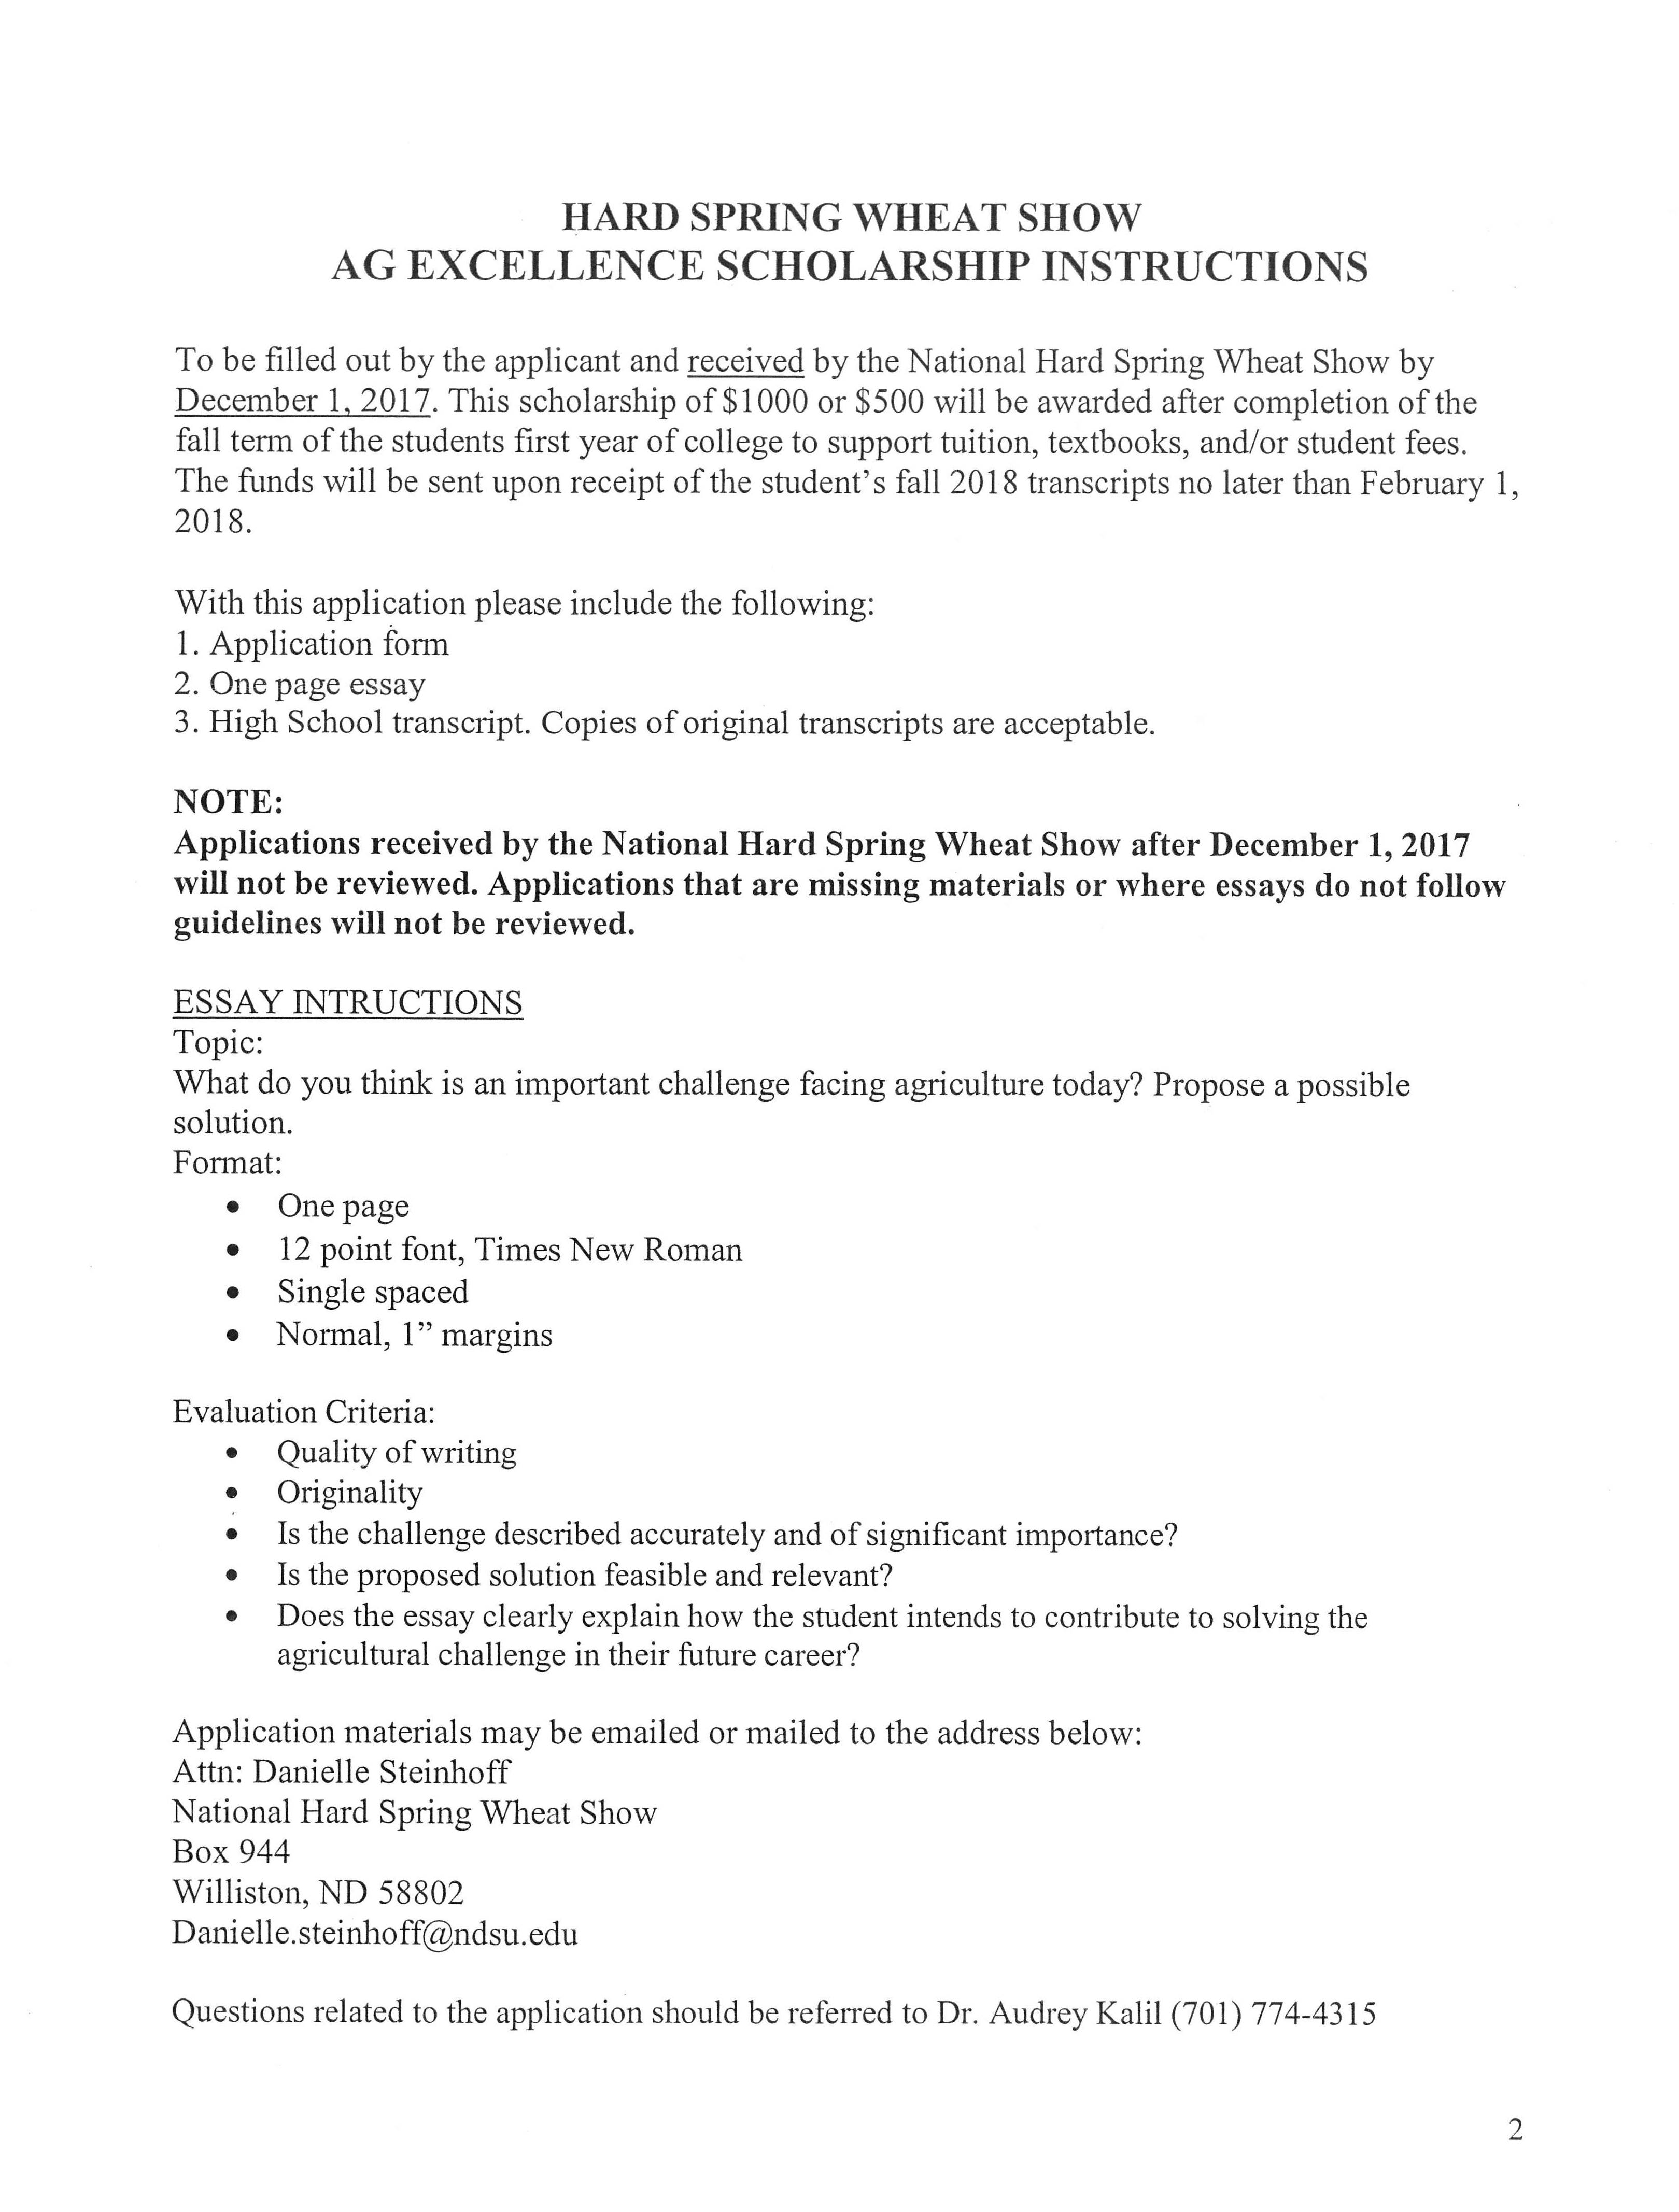 015 Short Essay Scholarships Page 2 Amazing College Easy Full